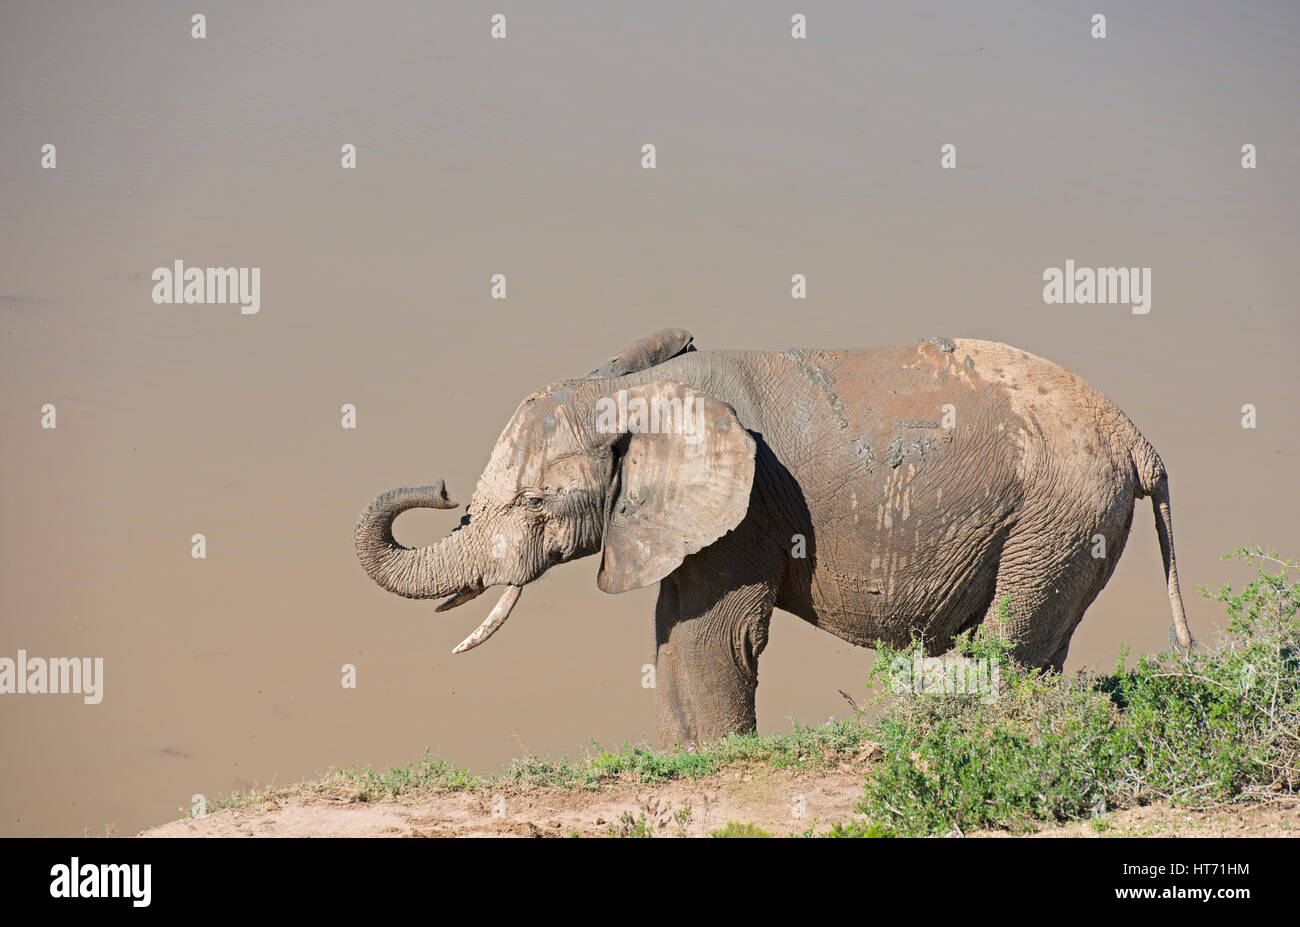 Elephant with mud lifting trunkStock Photo